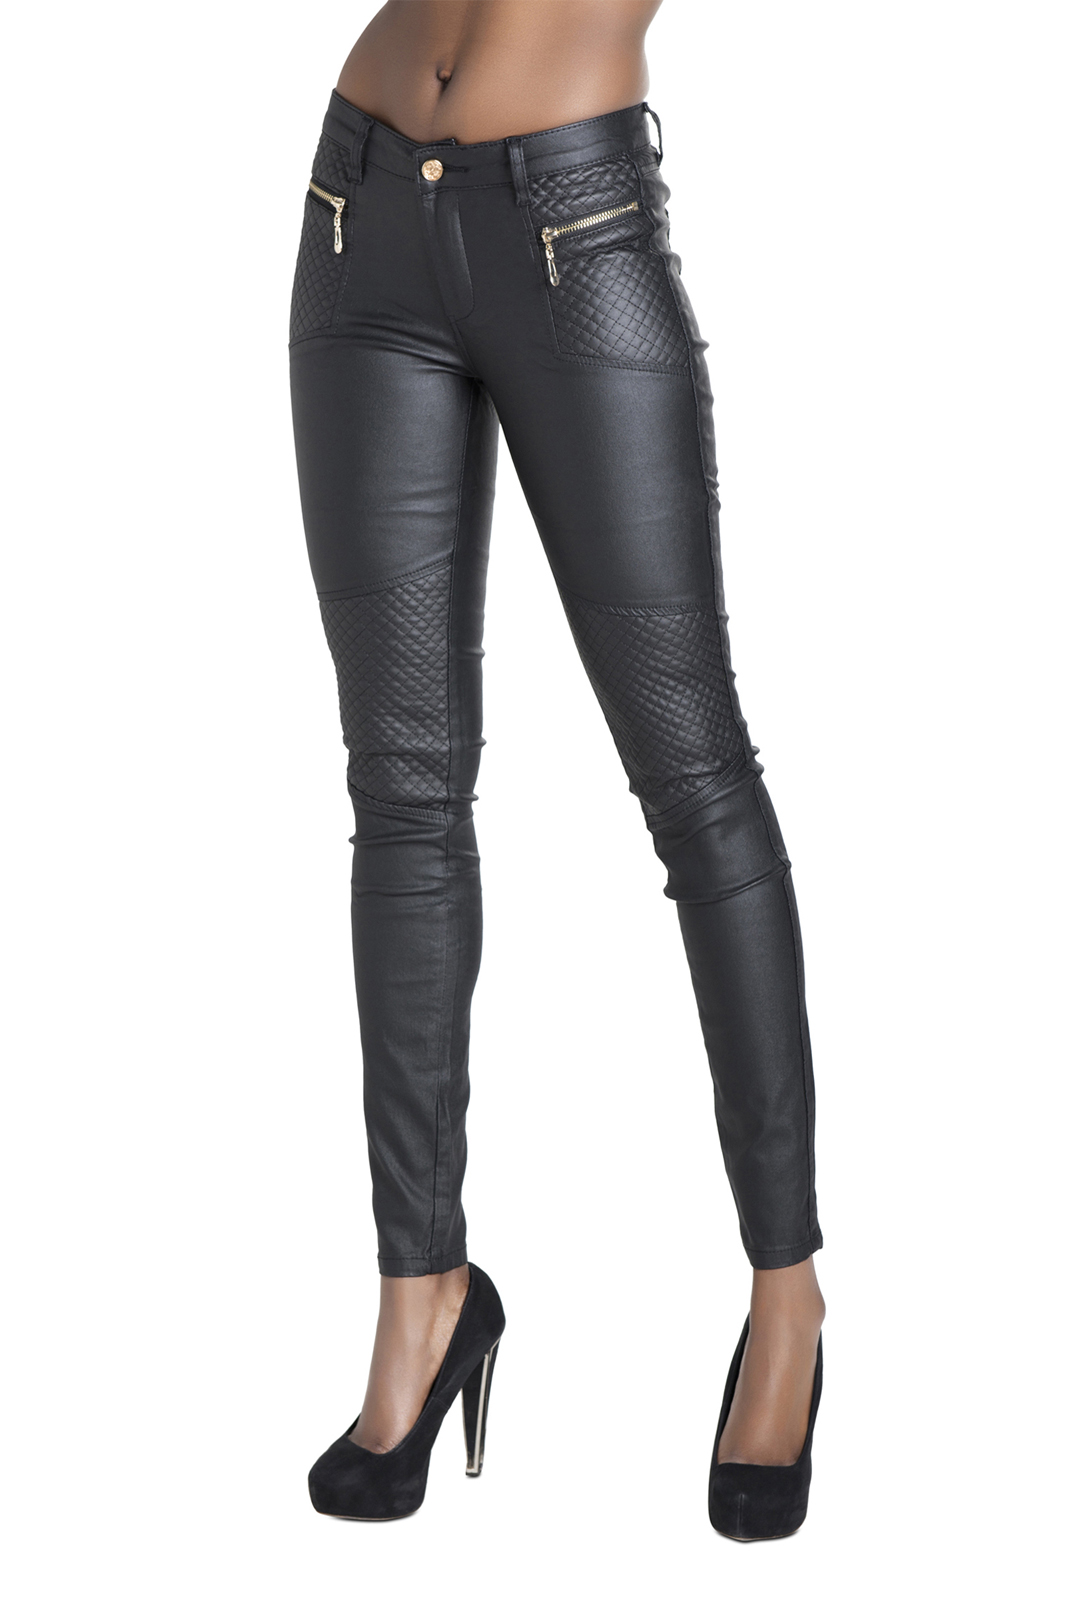 A leather pant for women is telling the world you have attitude. It reveals a bad side of your personality that you're willing to embrace. This personality is tough, gritty, and fearless. J Brand, Rag & Bone, Helmut, and Spanx are a snippet of the various designers venturing into women's leather pants and owning it.